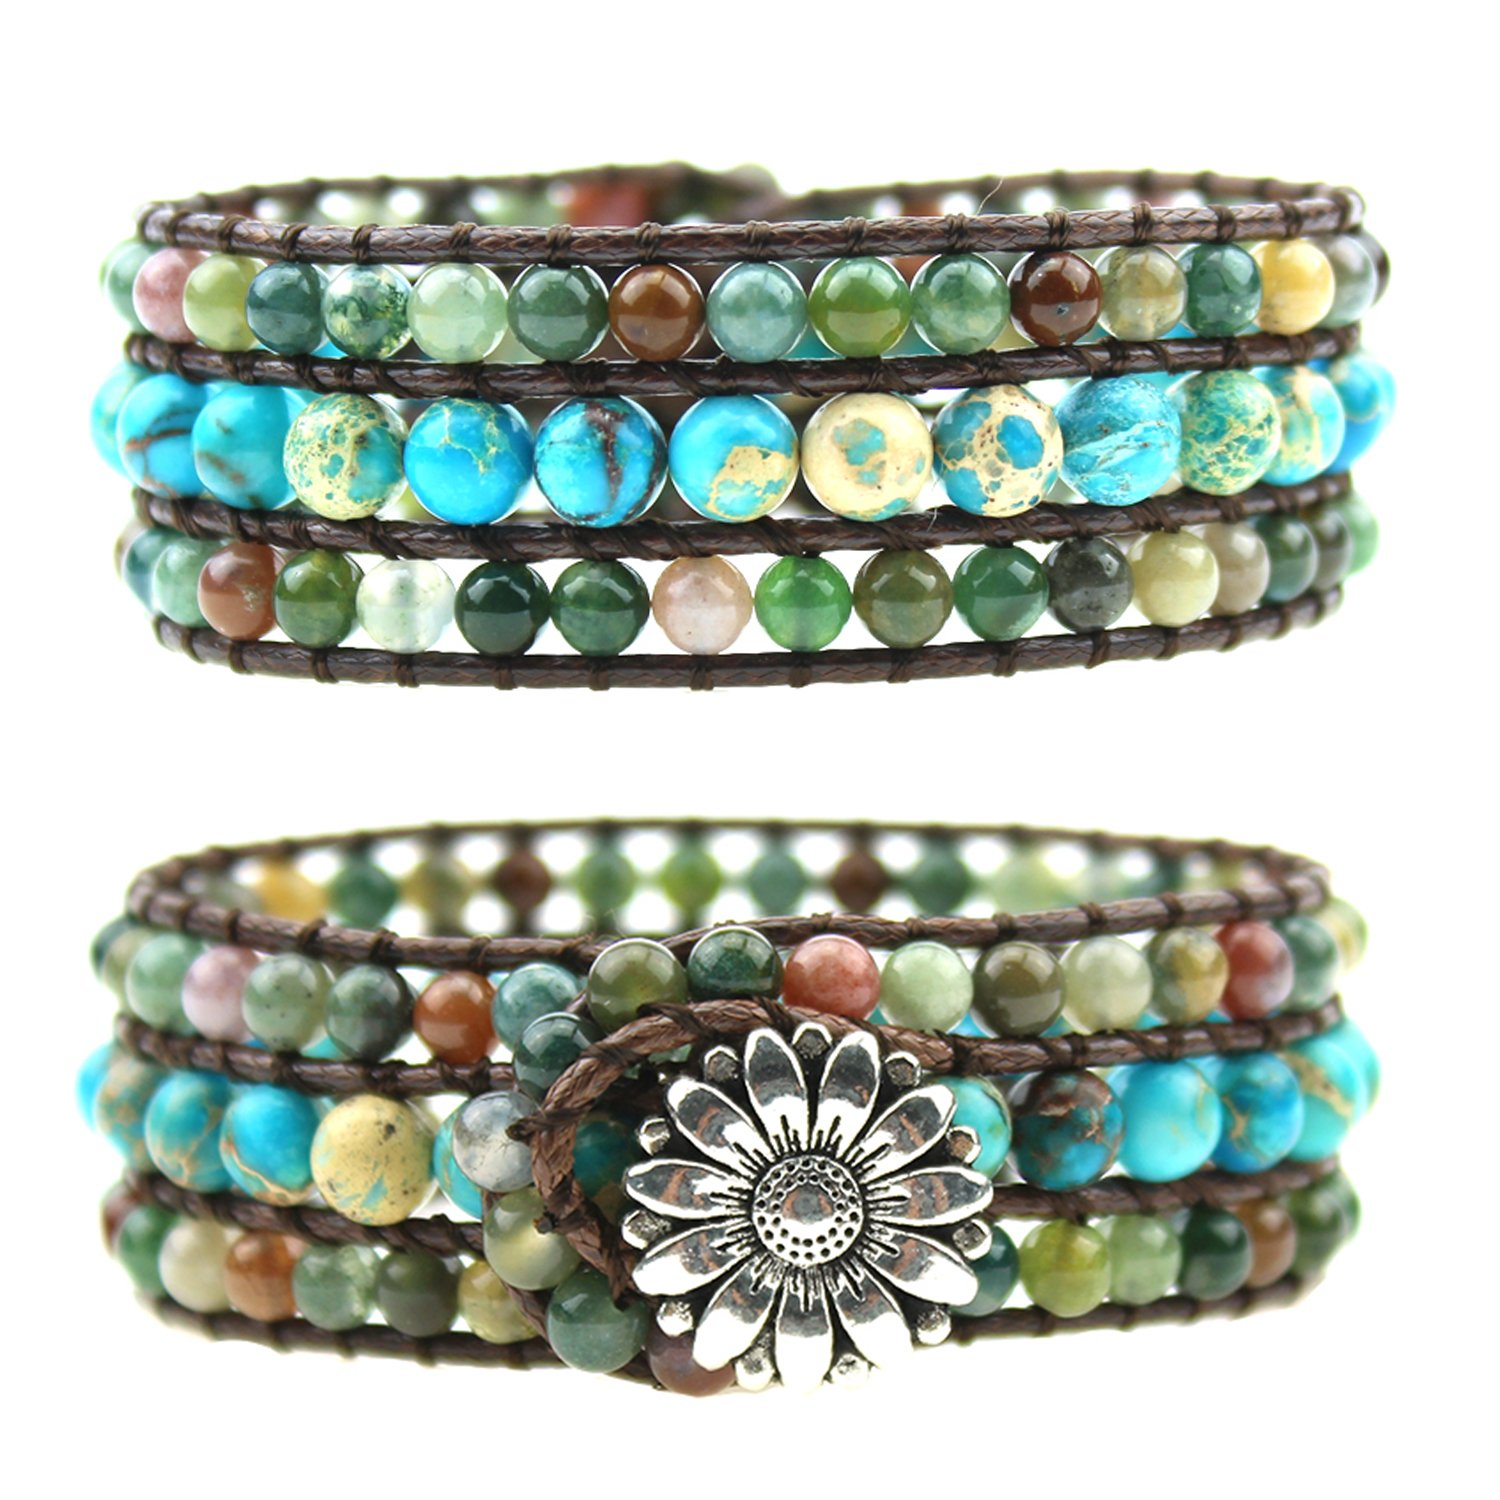 IUNIQUEEN New Arrival Natural India Agate Imperial Jasper Bead Wrap Statement Bracelet for Women(India Agate&King Stone)